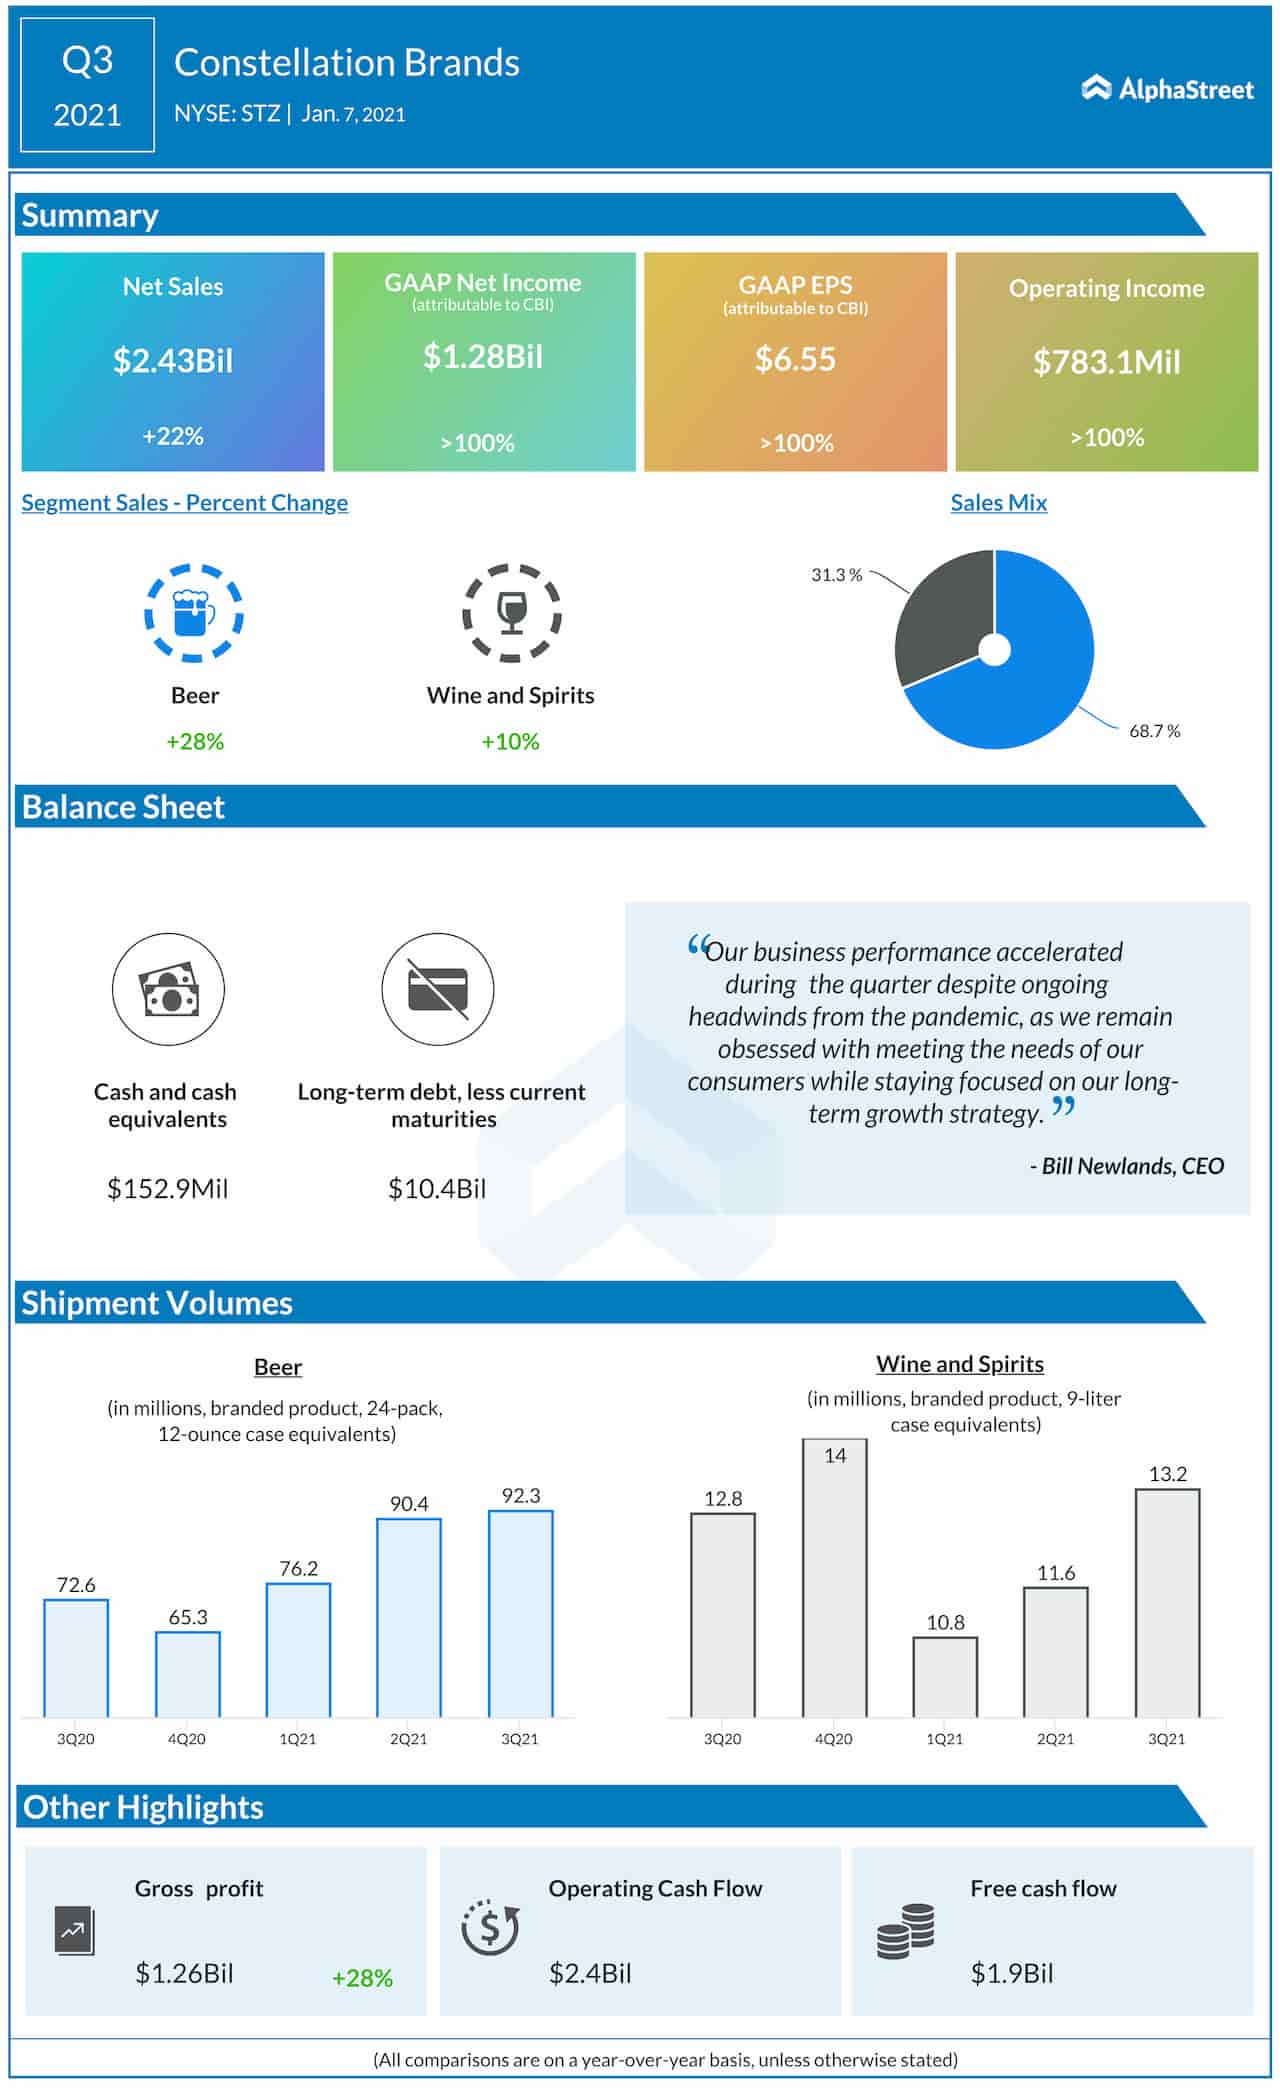 Constellation Brands (NYSE STZ) Q3 2021 earnings Infographic